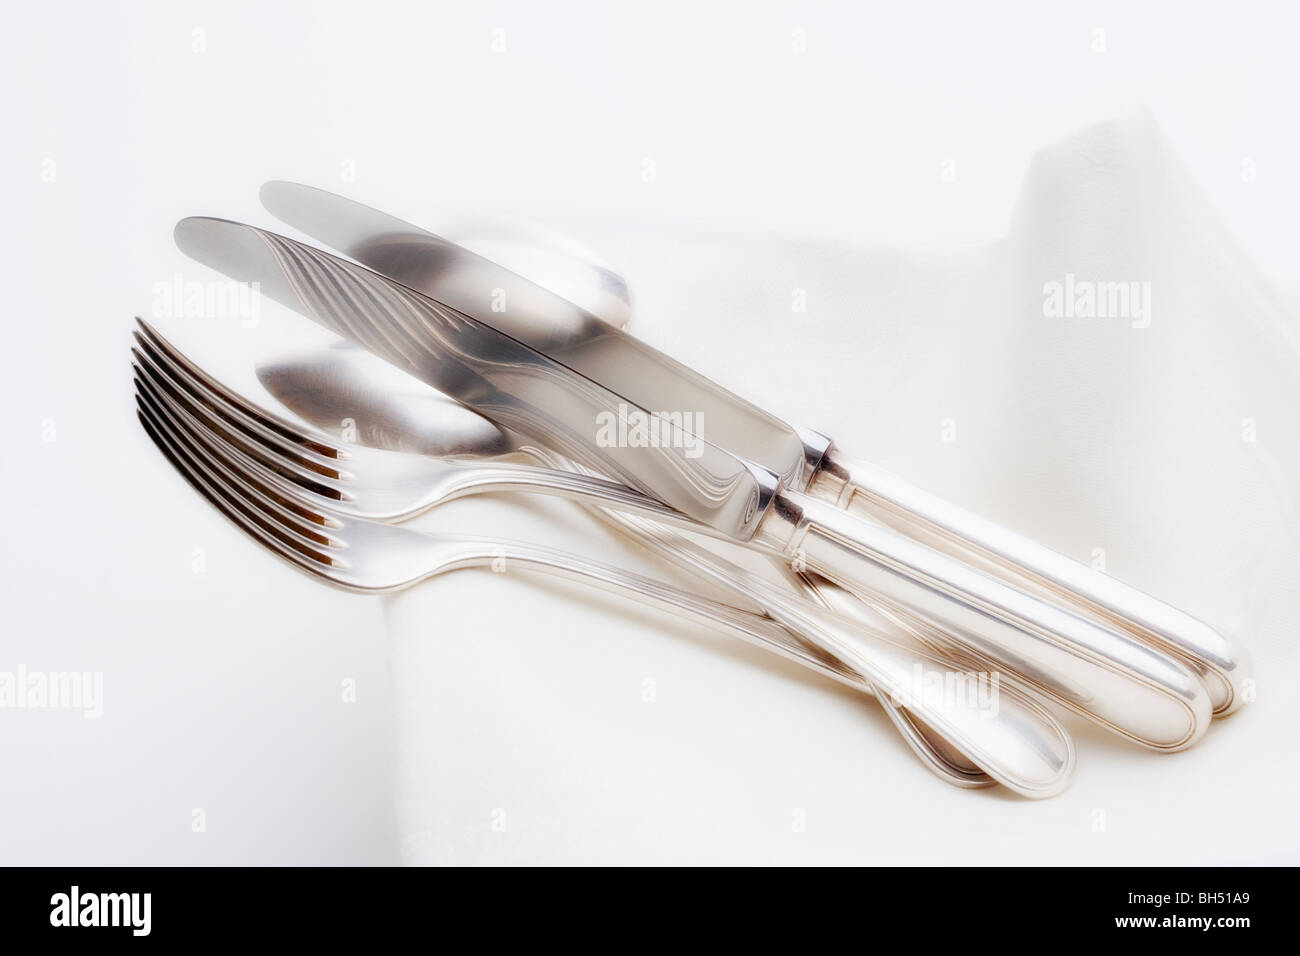 silverware - closeup of elegant knife fork and spoon on white cloth - Stock Image